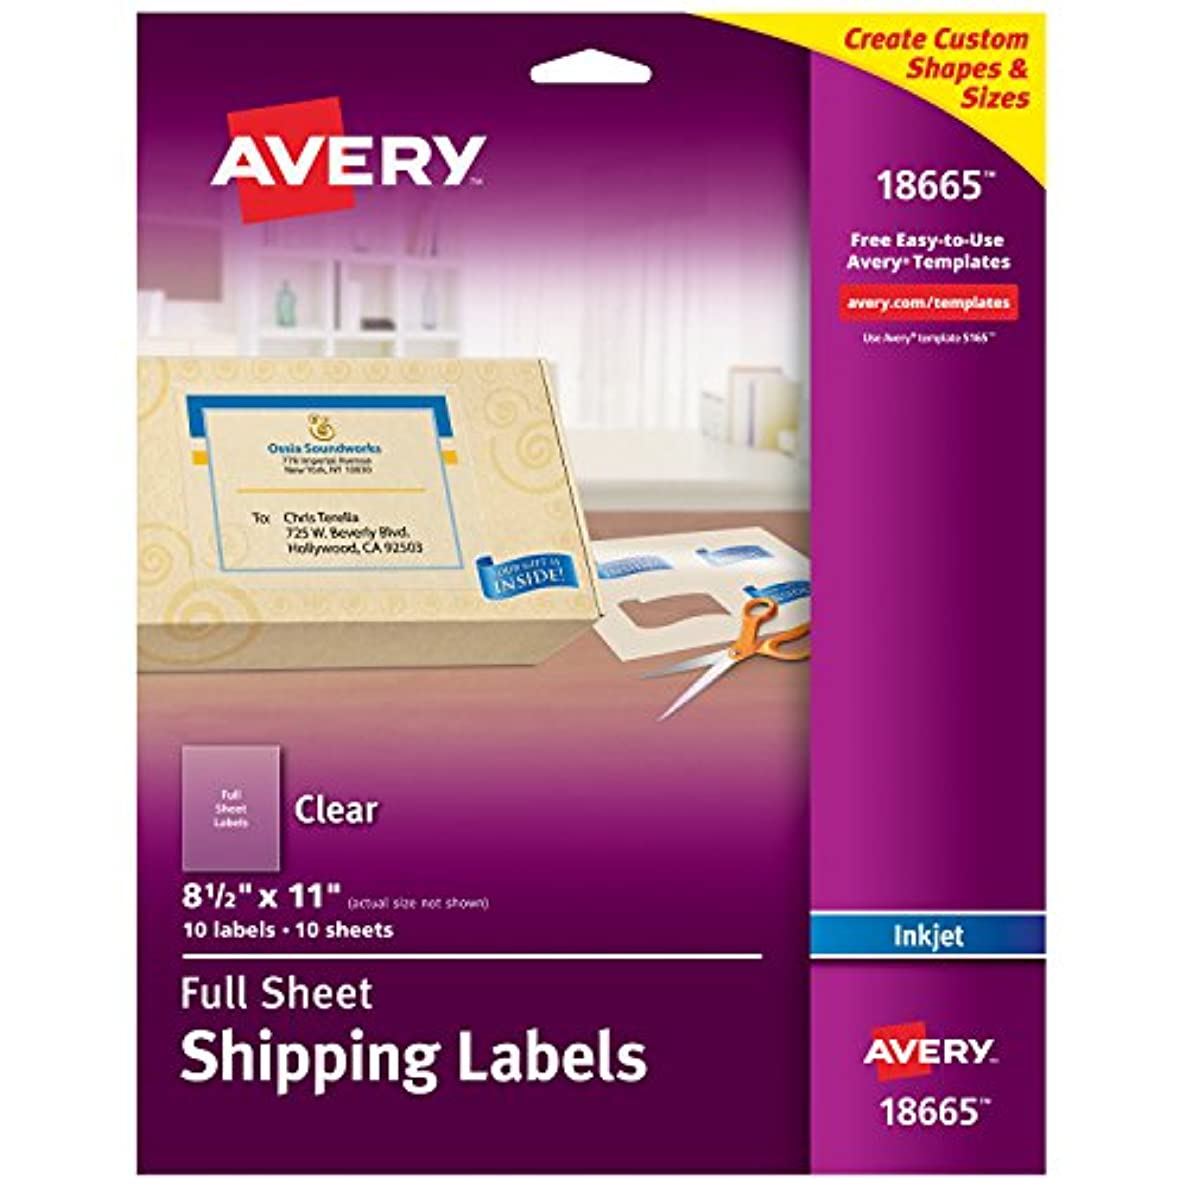 Avery Matte Frosted Clear Full Sheet Labels for Inkjet Printers, 8.5